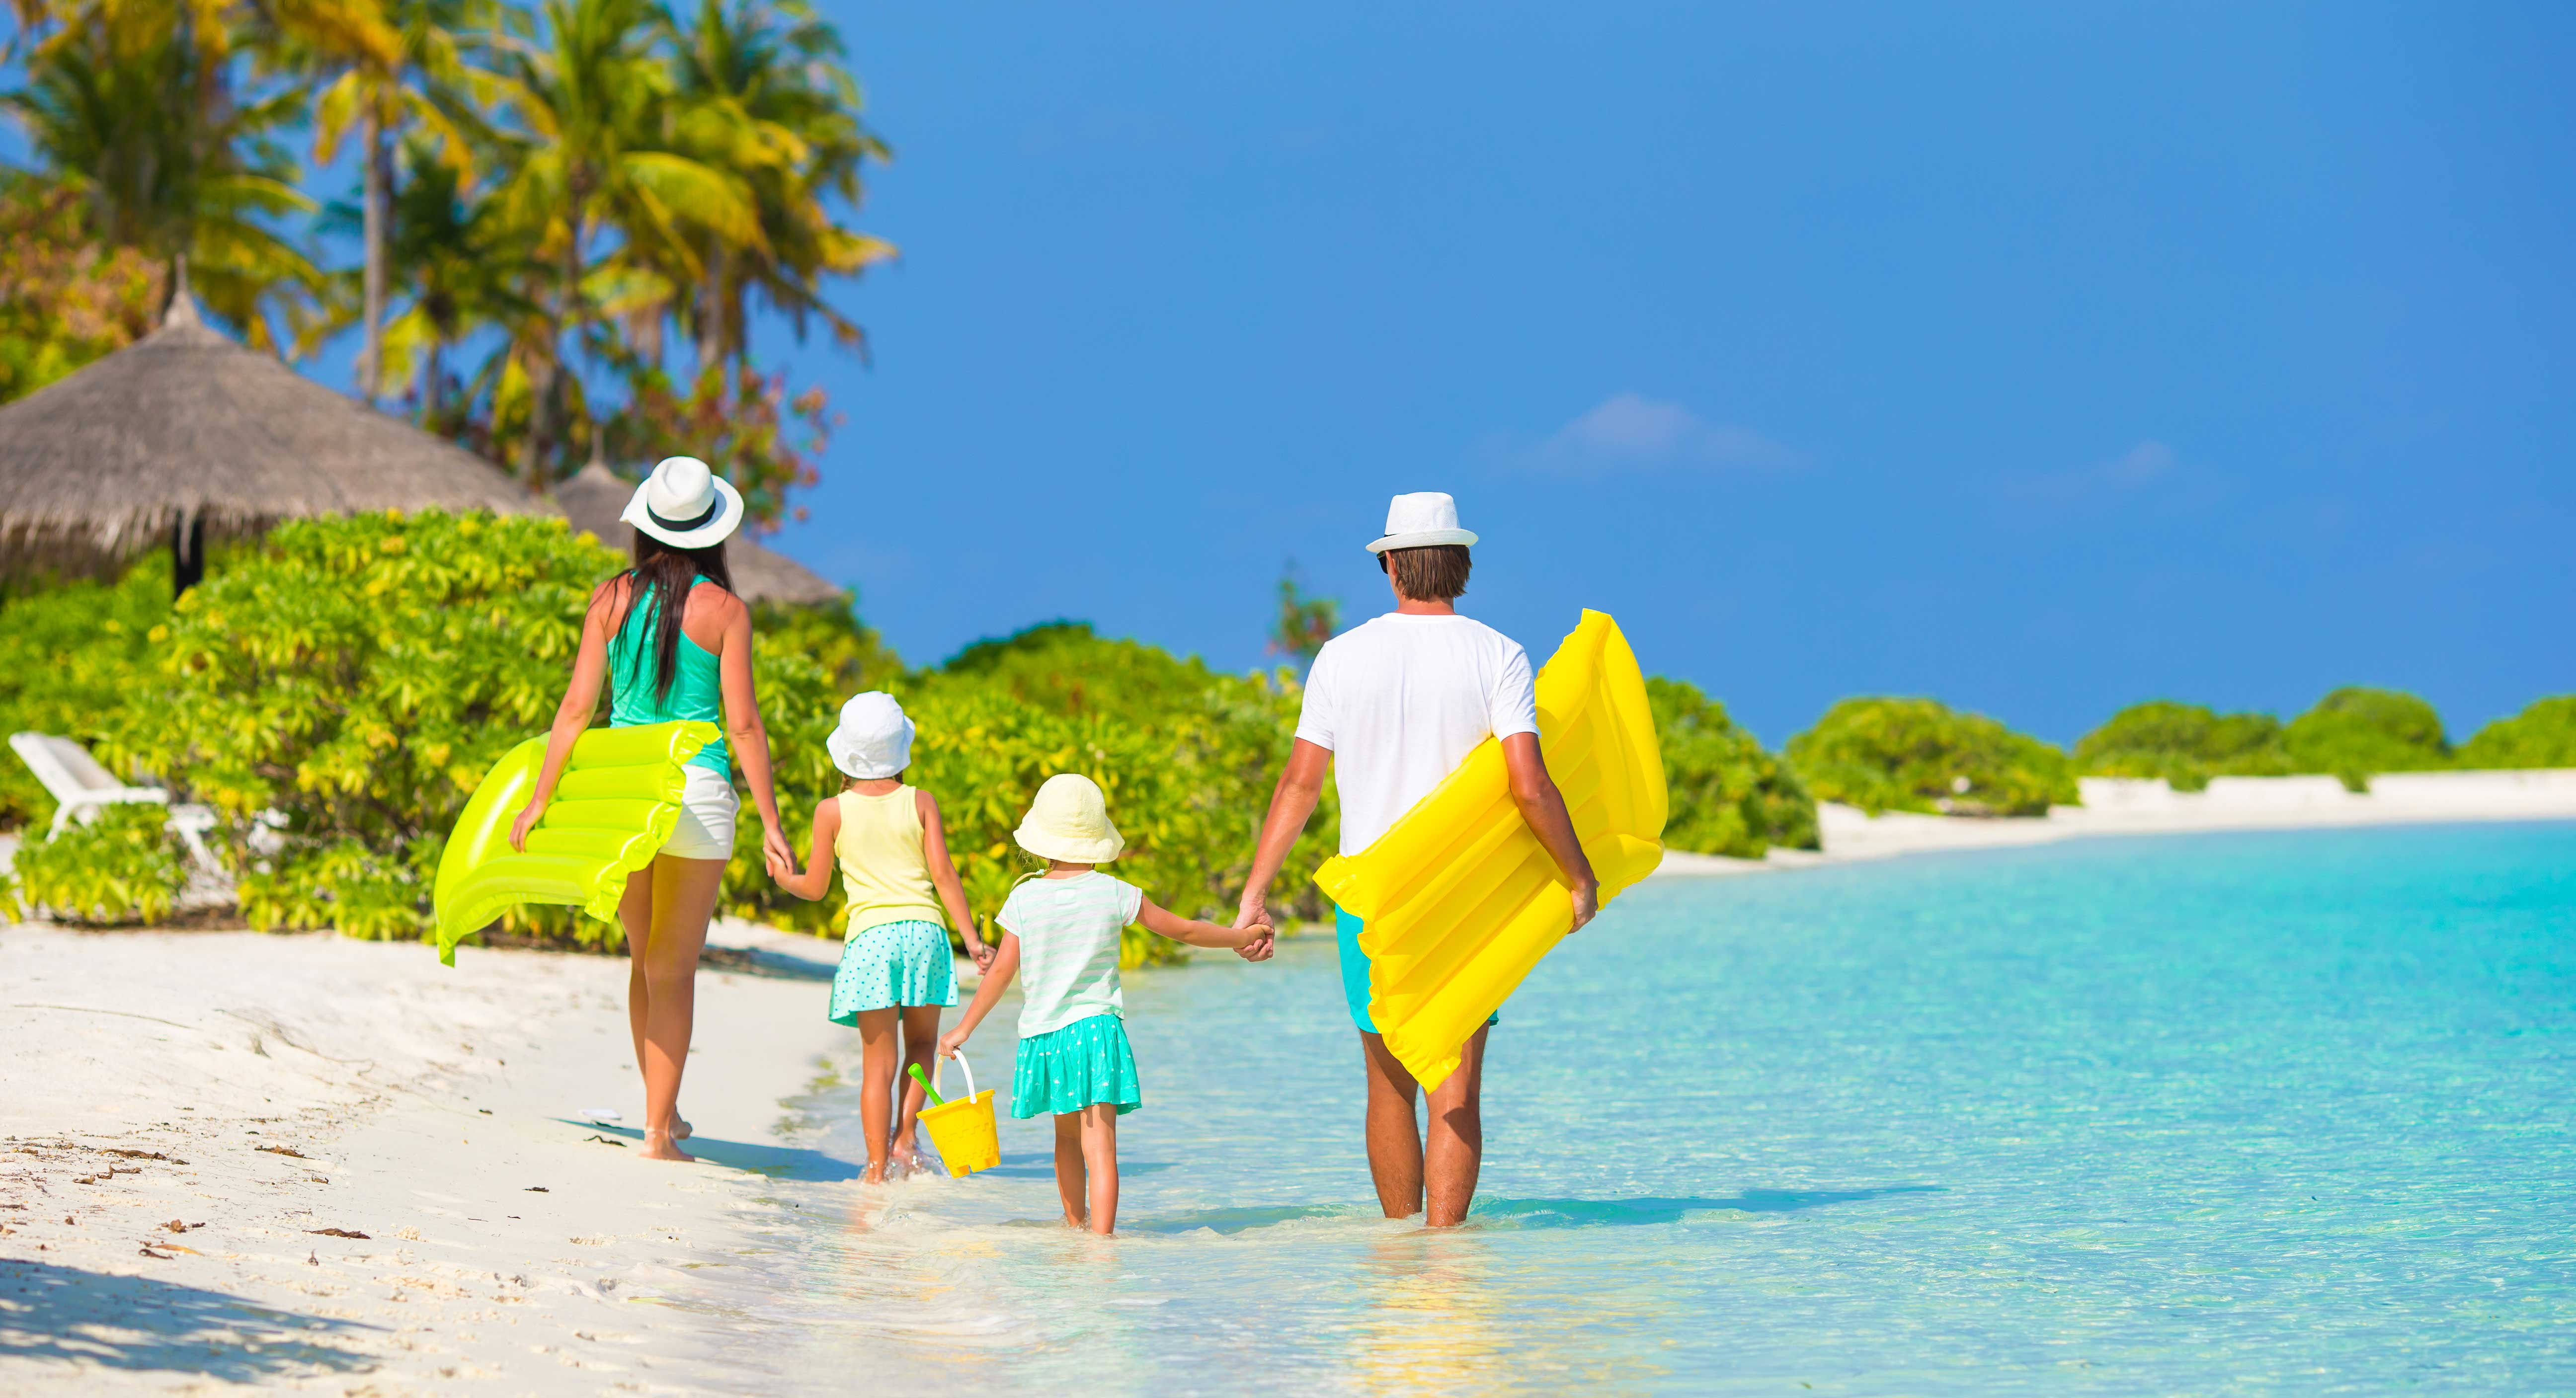 Family of four walking along the beach holding lilo sunbeds